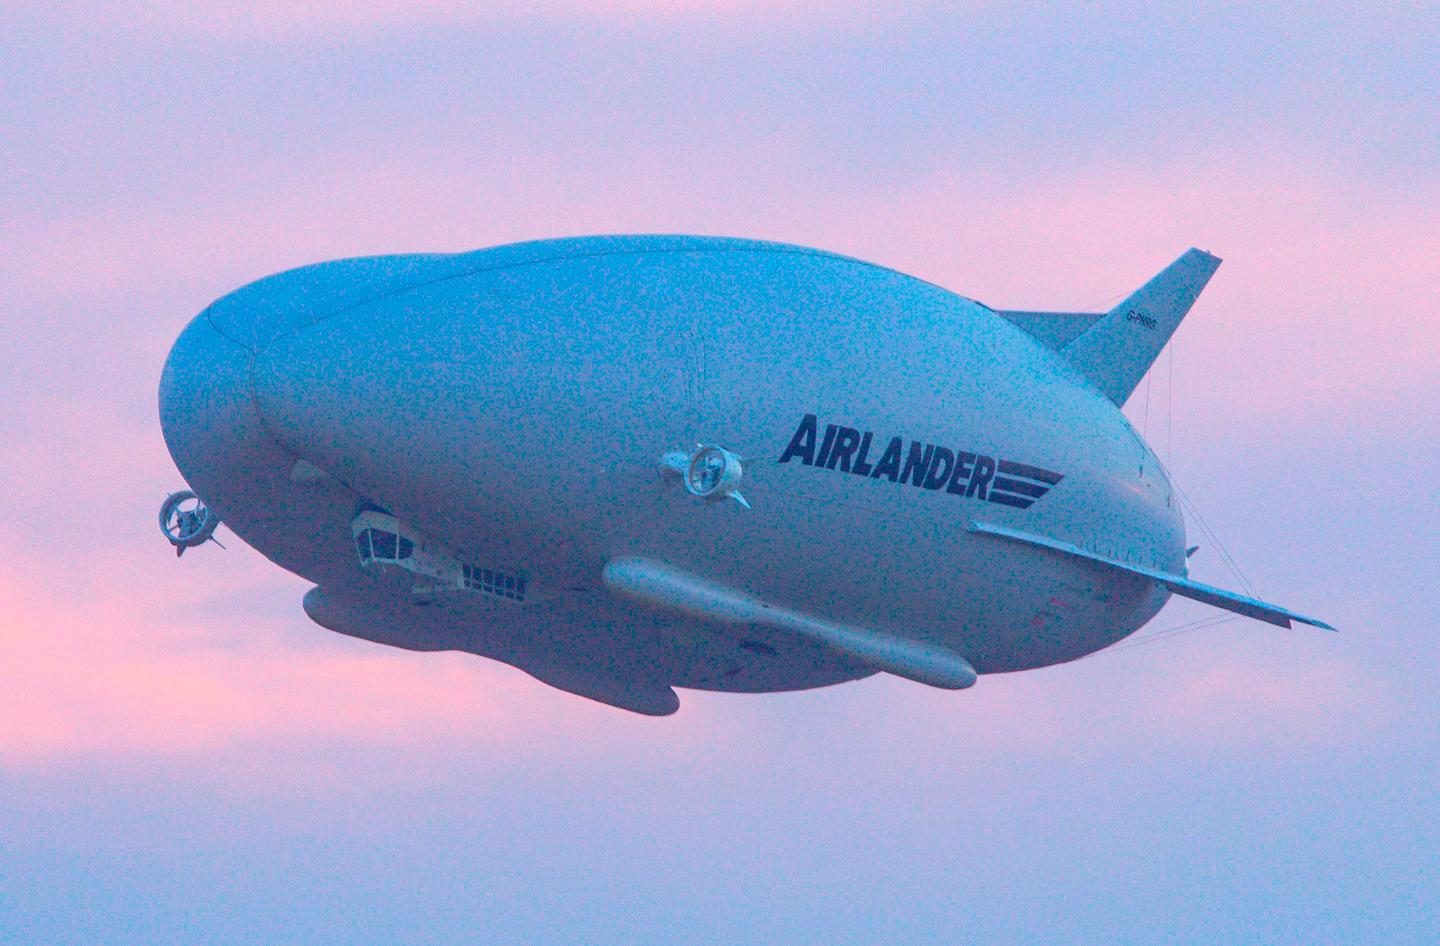 The Airlander 10 airship, prior to the installation of its Auxiliary Landing System